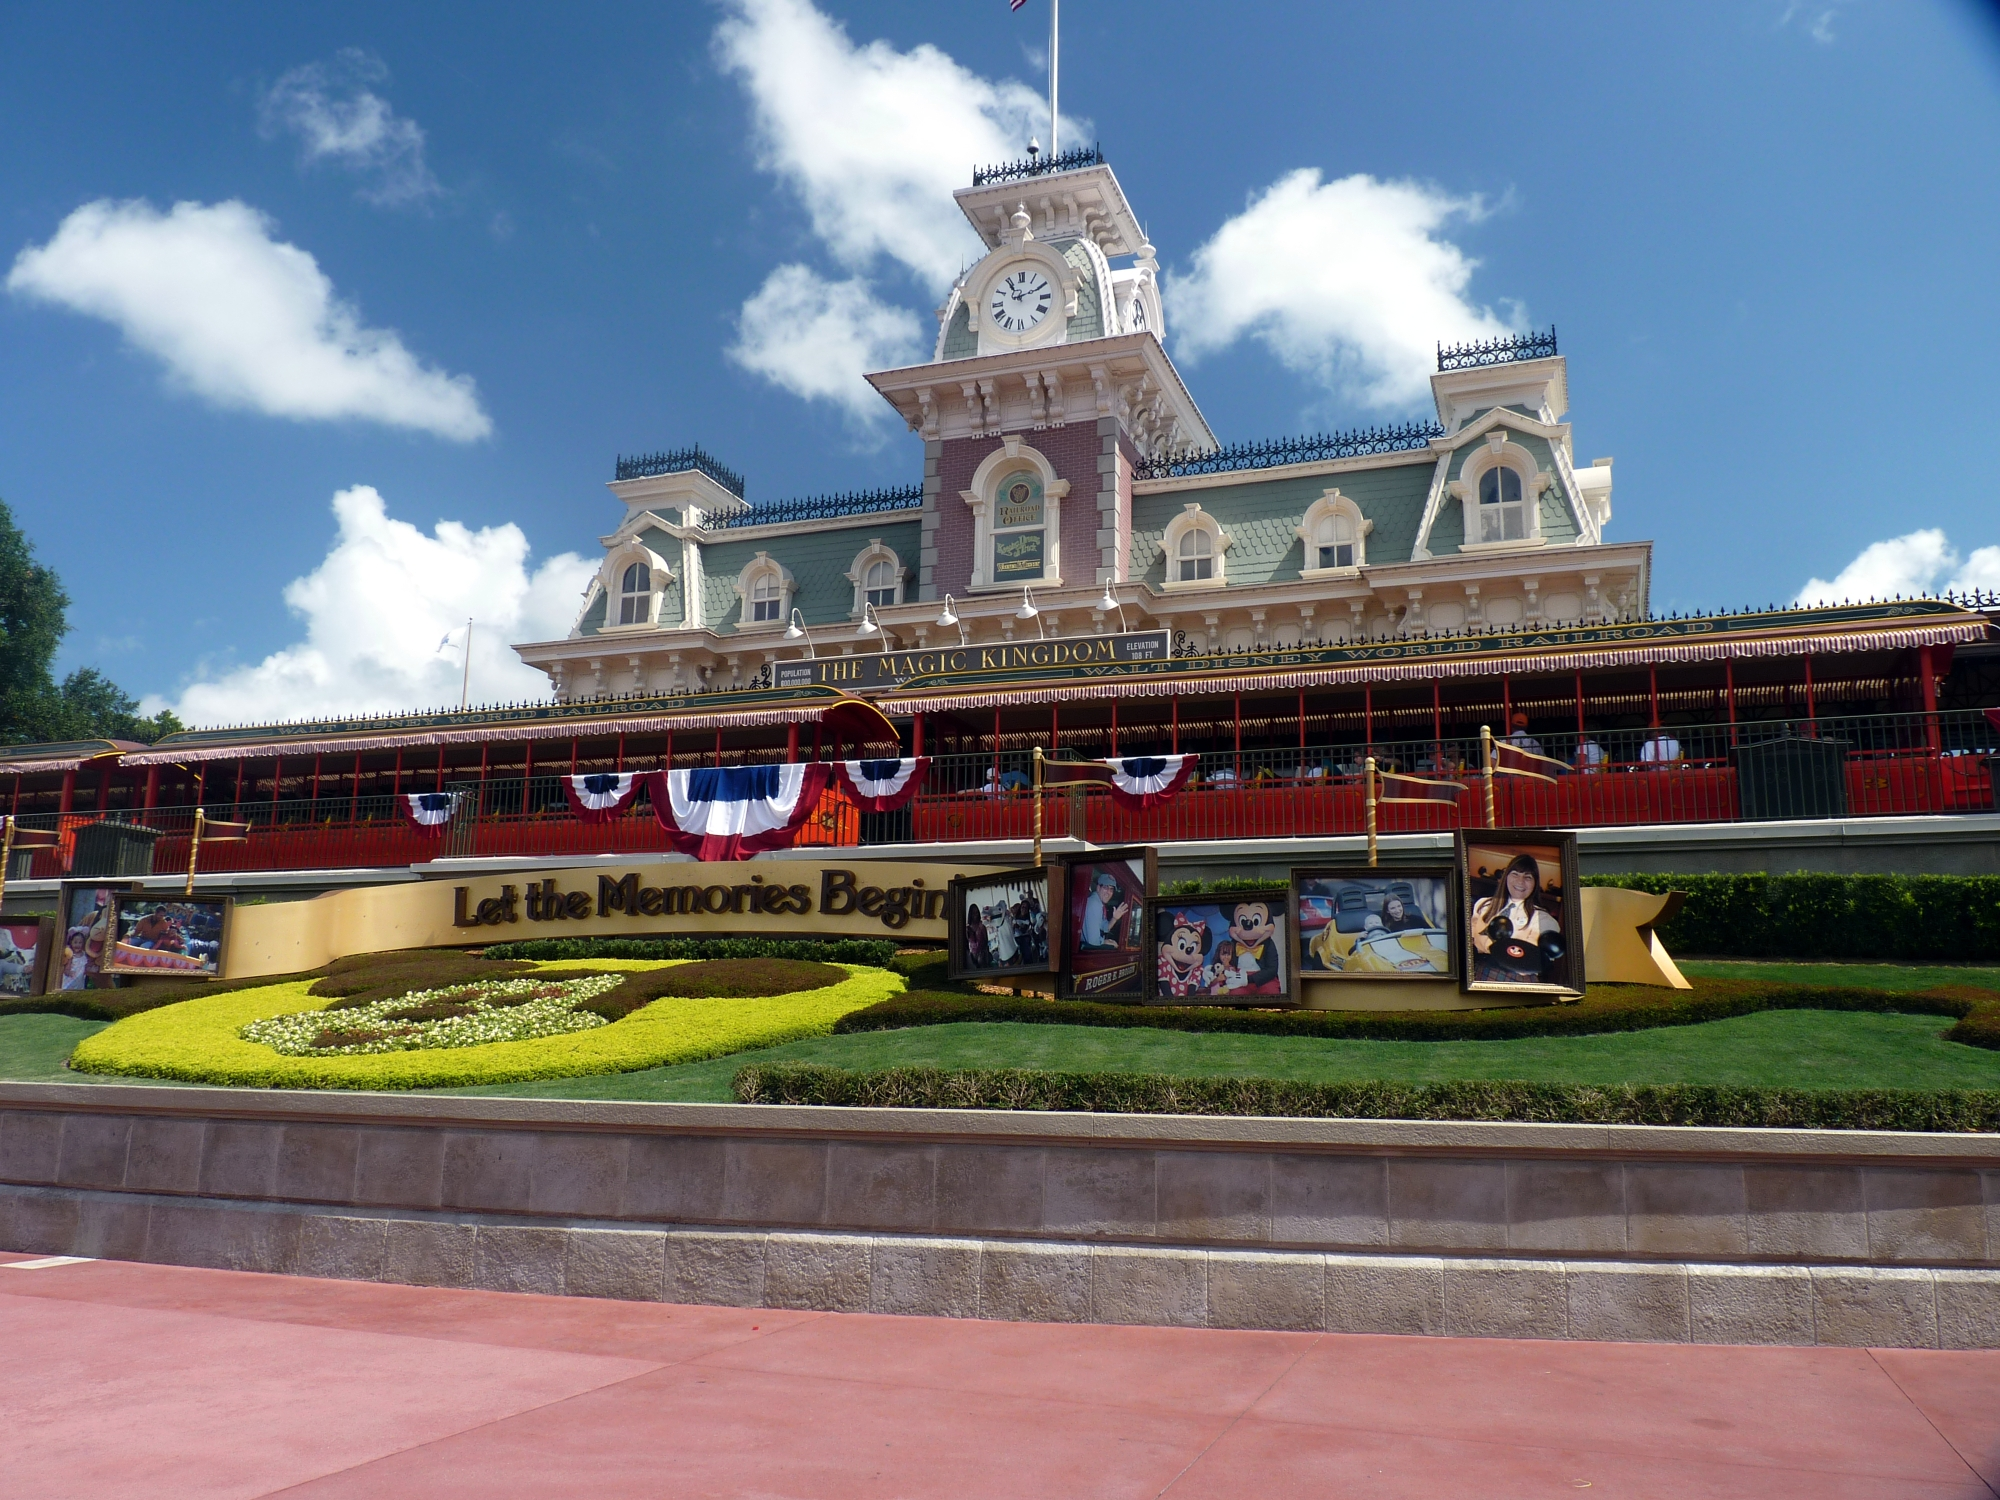 Jud's Disney Picture of the Day: Up Front